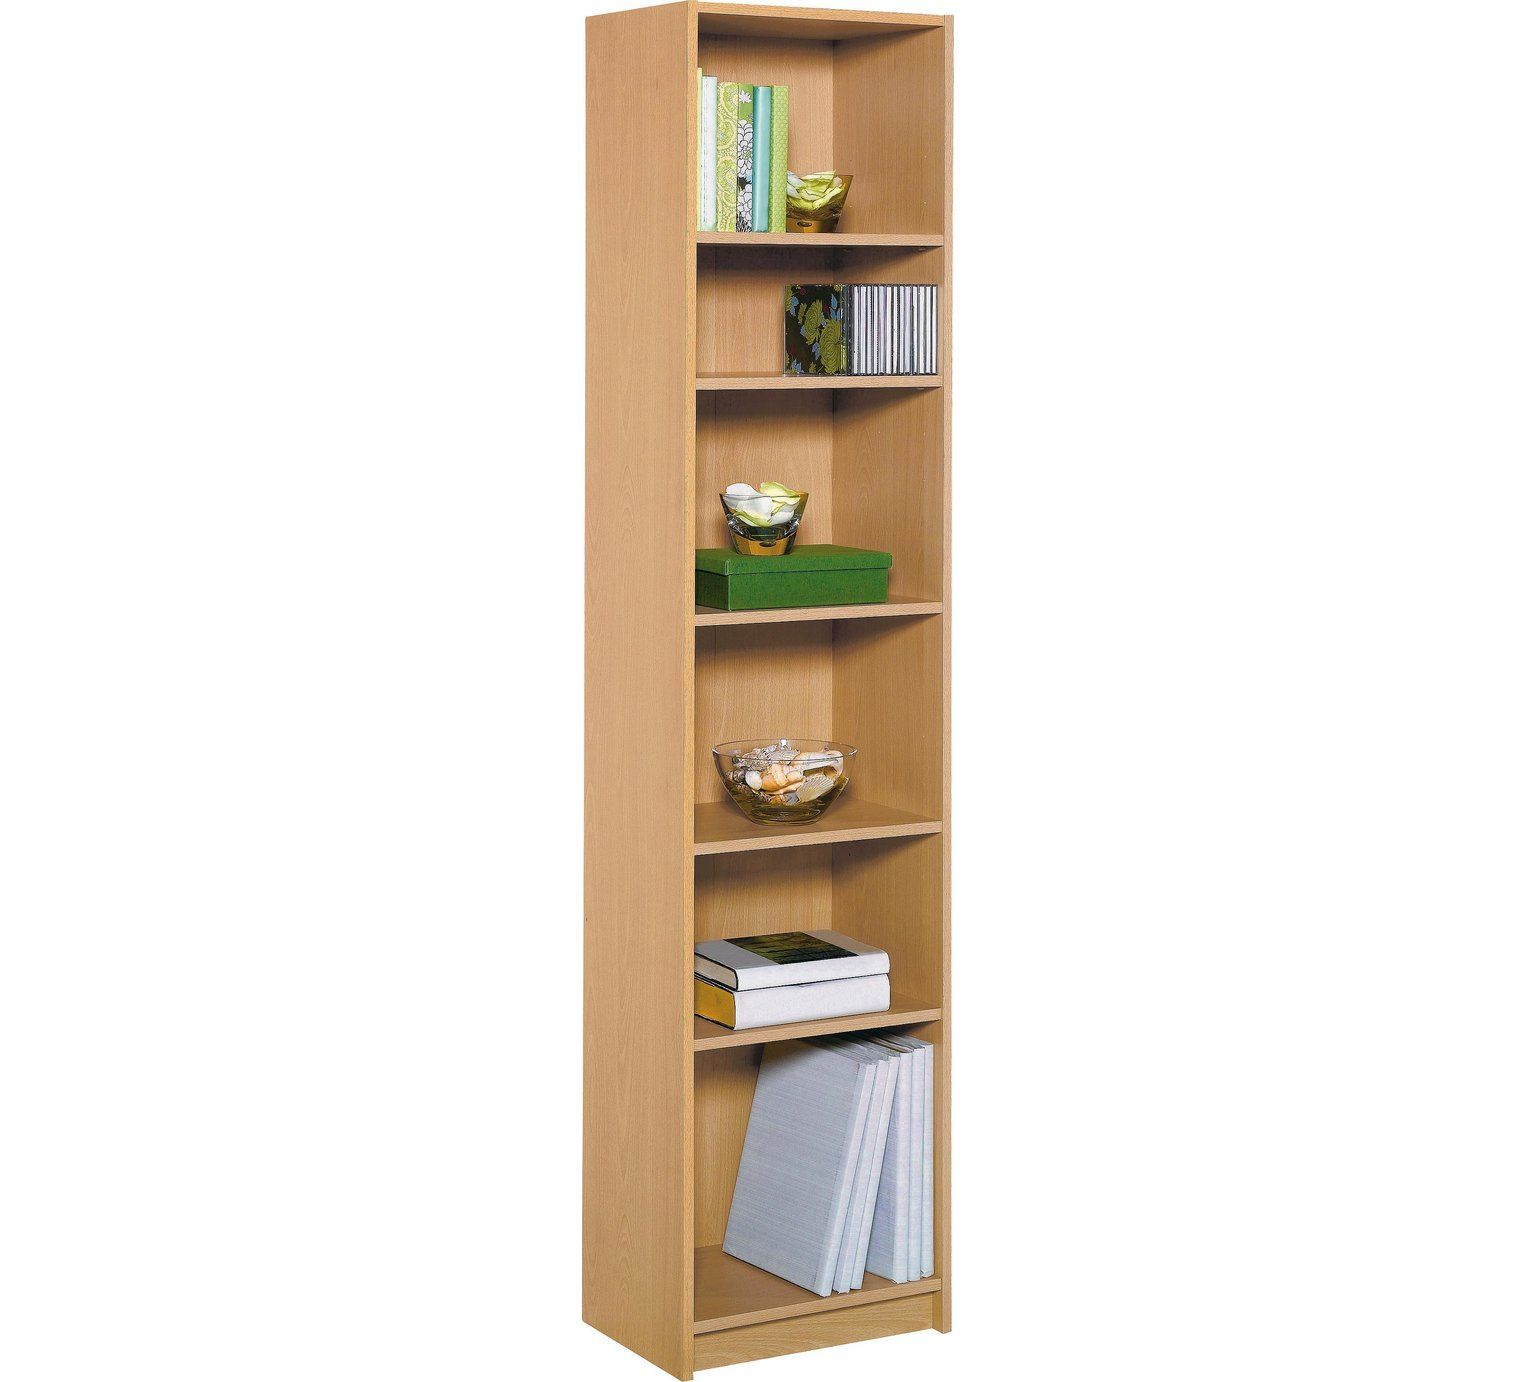 product deep made tennsco high storage bookcase welded bookcases easy download image